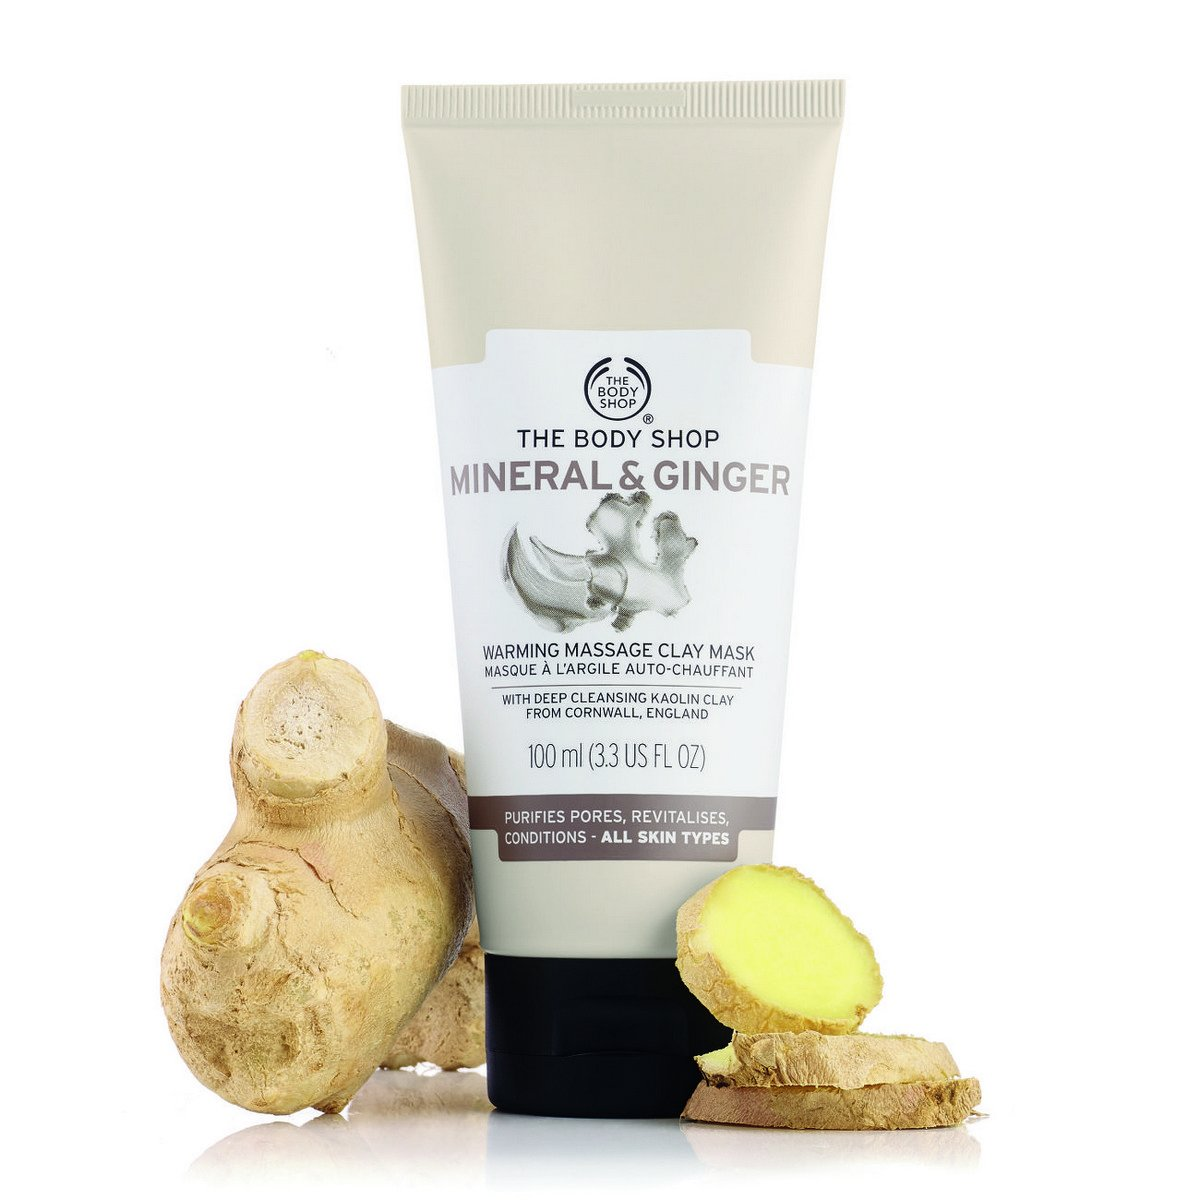 The Body Shop Mineral & Ginger Warming Massage Clay Mask